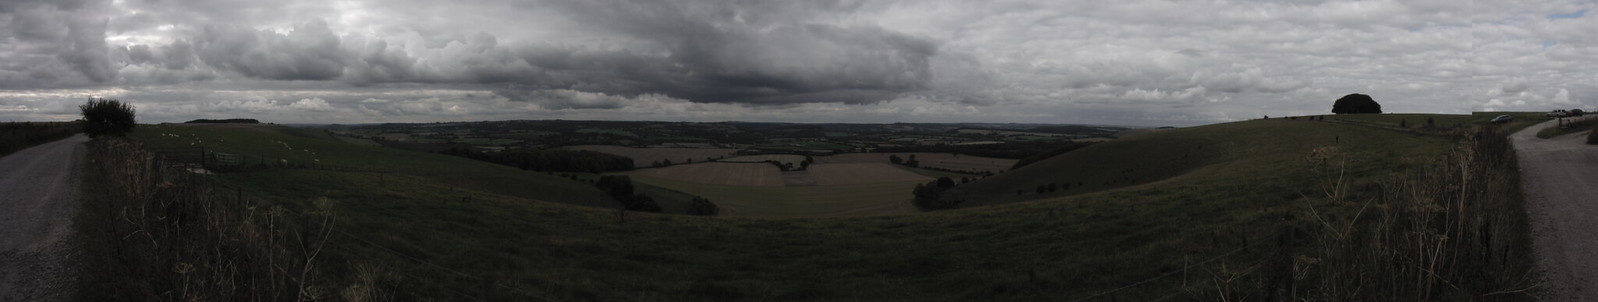 180 deg Panoramic View from the Salisbury Ox Drove, Win Green Hill SWC Walk 251 Tisbury Circular via Ludwell and Berwick St. John